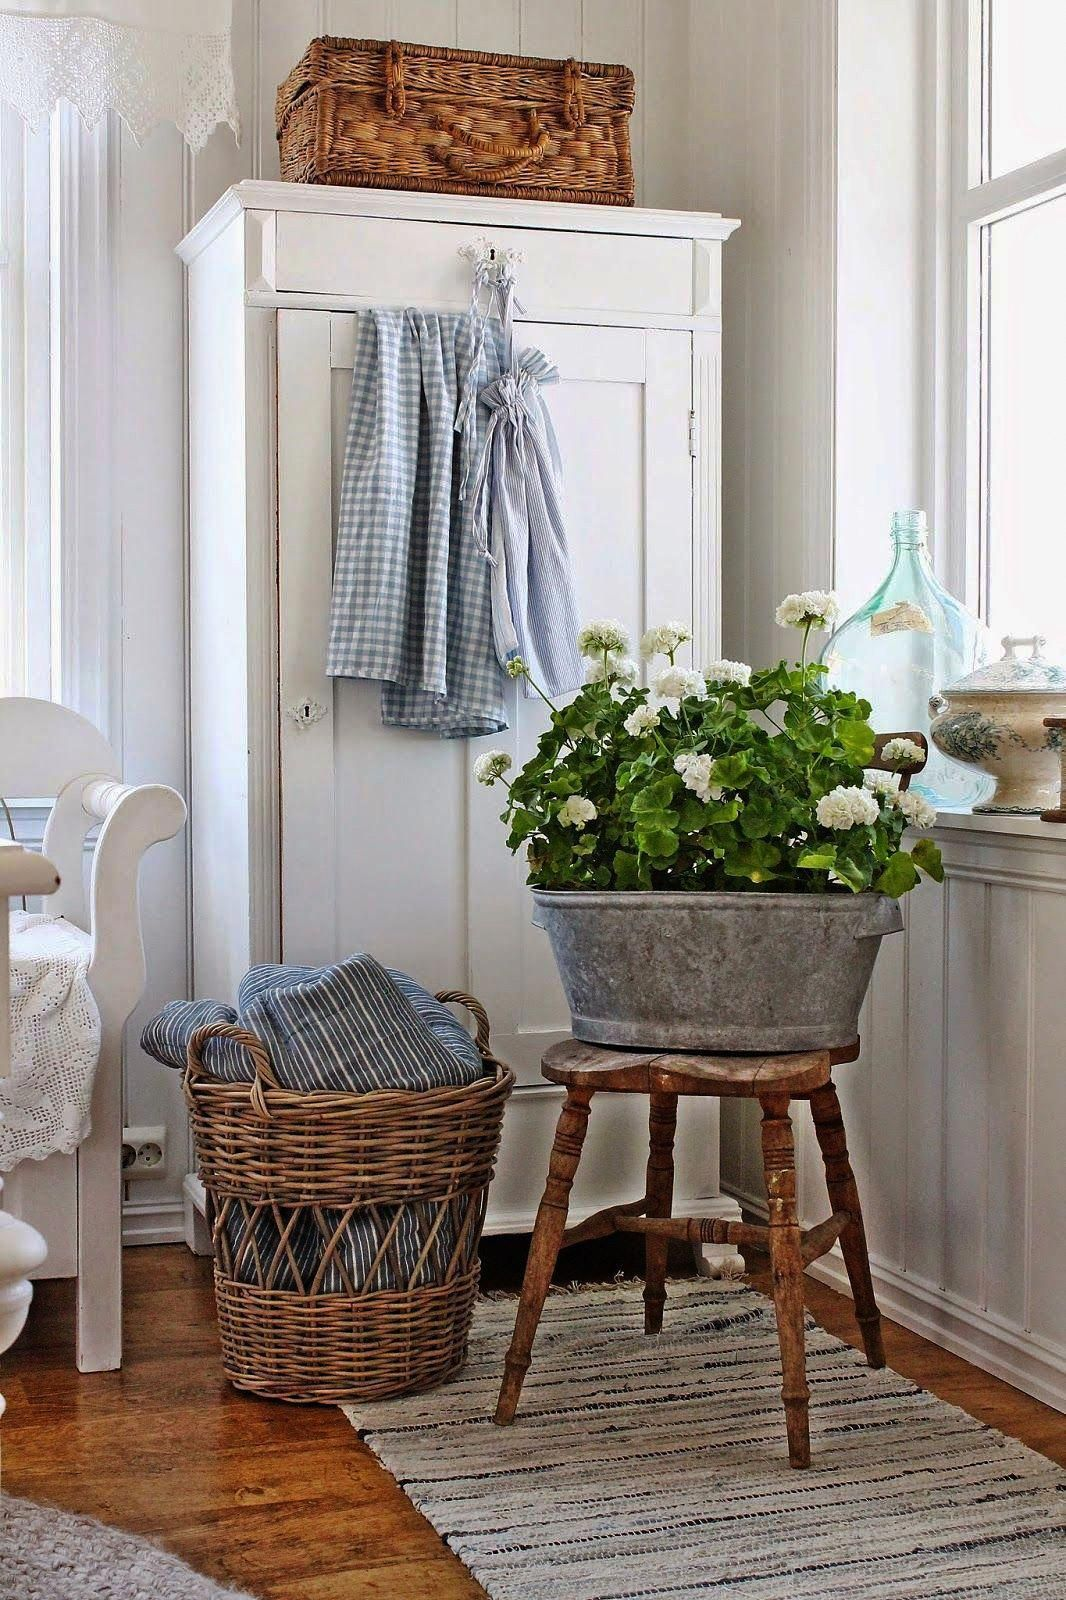 Shabby Chic Style Table And Chairs Shabby Chic Home Decor ...